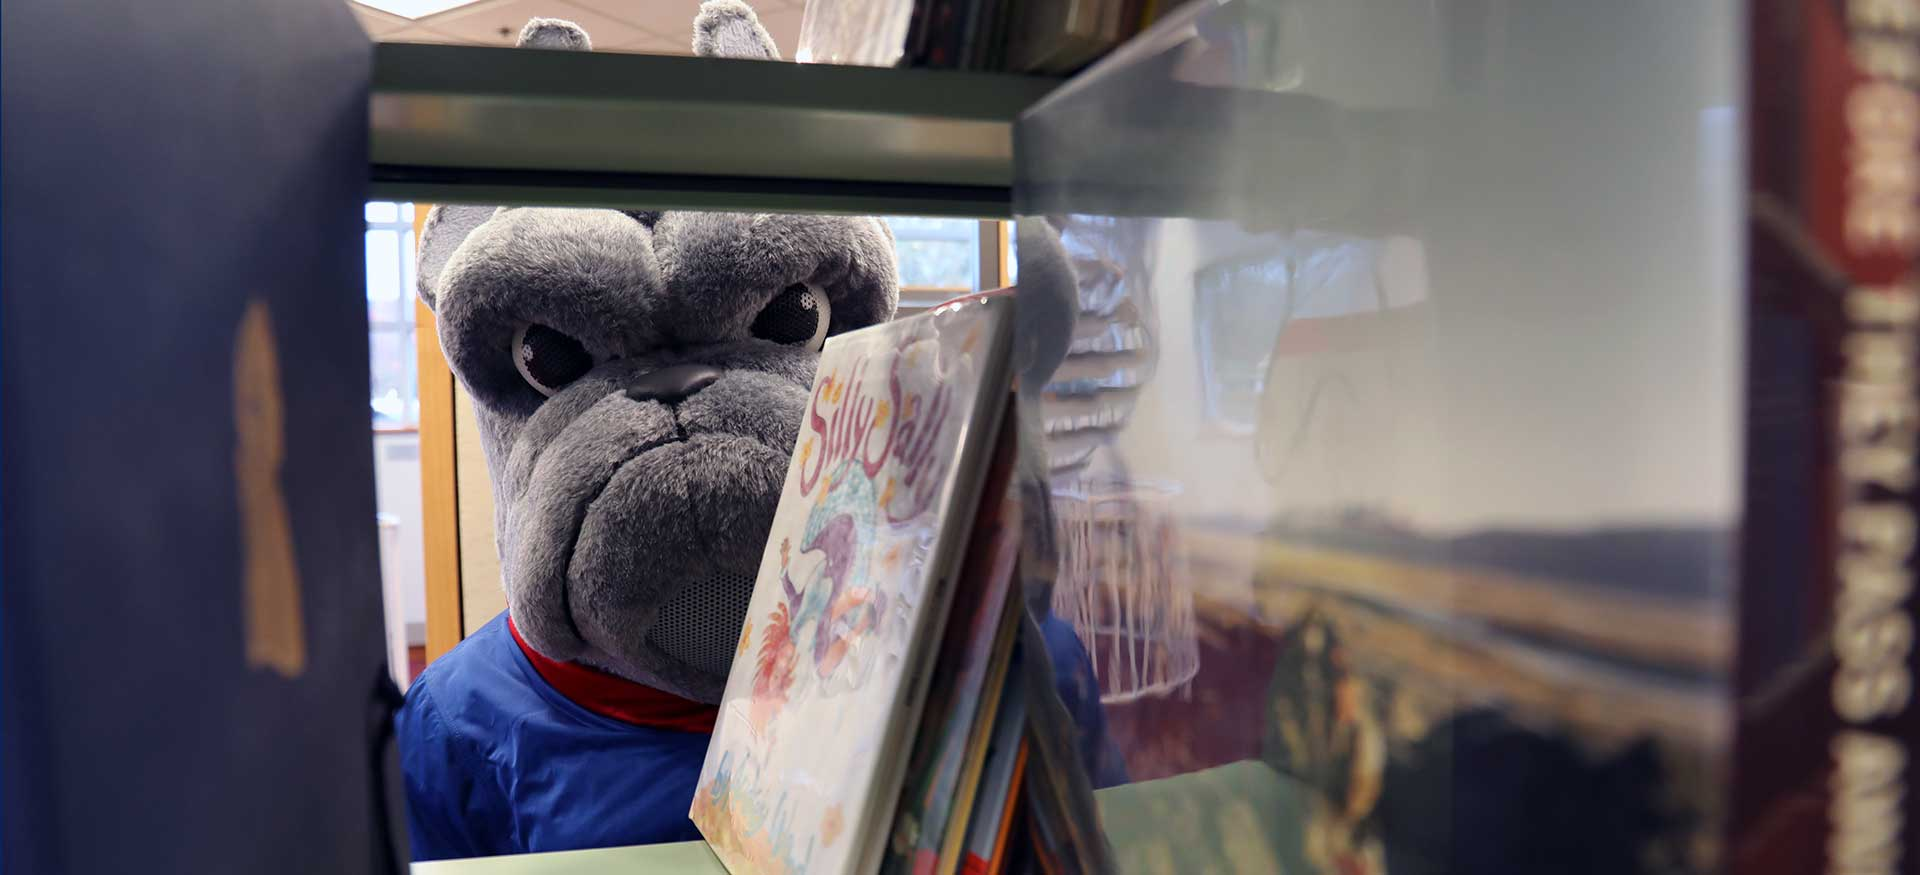 Bulldog peeking through library shelves banner